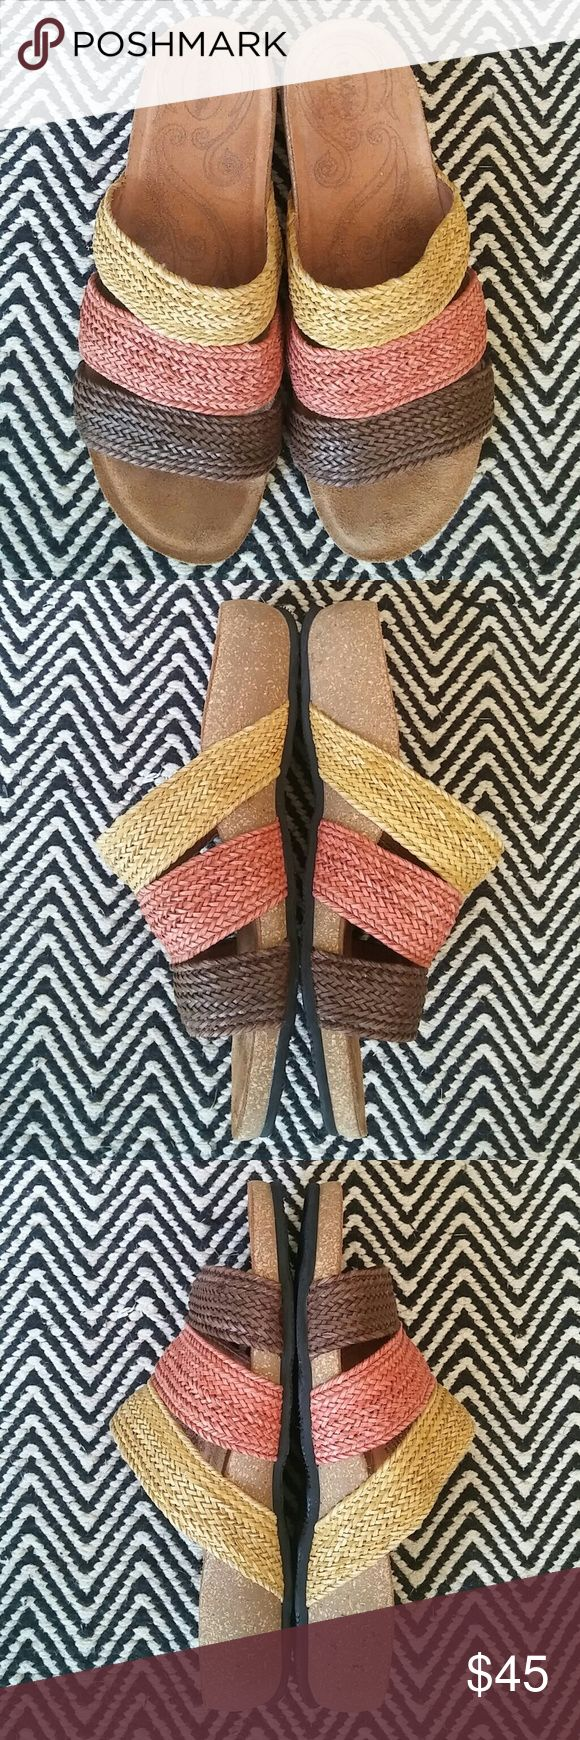 TAOS Sandals Leather interior Excellent condition! Super comfortable Made in Spain Marked Euro size 40 but they fit like 9 Taos Footwear Shoes Sandals